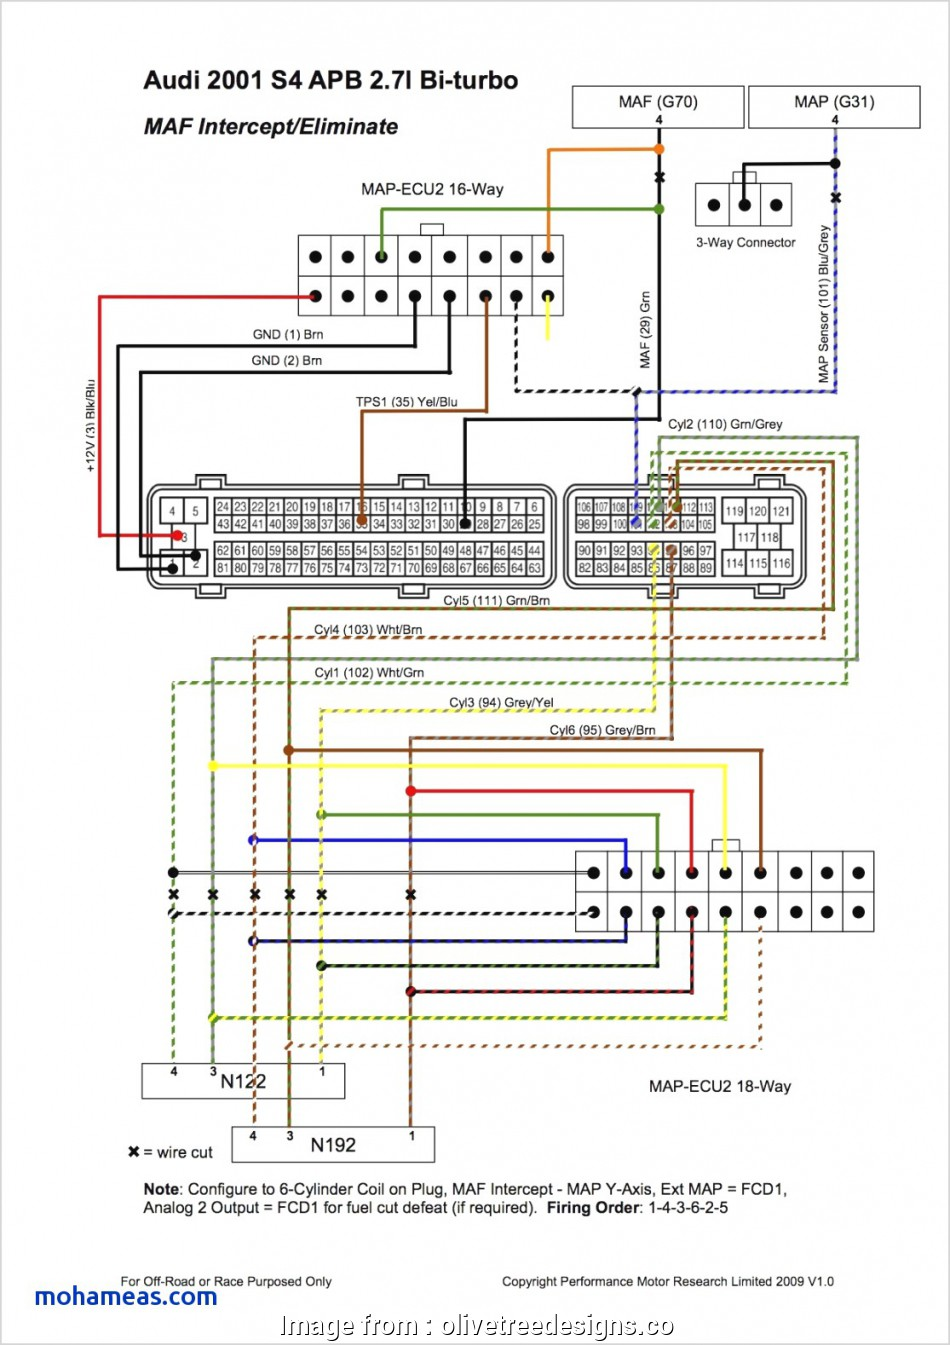 Automotive Wiring Diagram Worksheet Cleaver Automotive